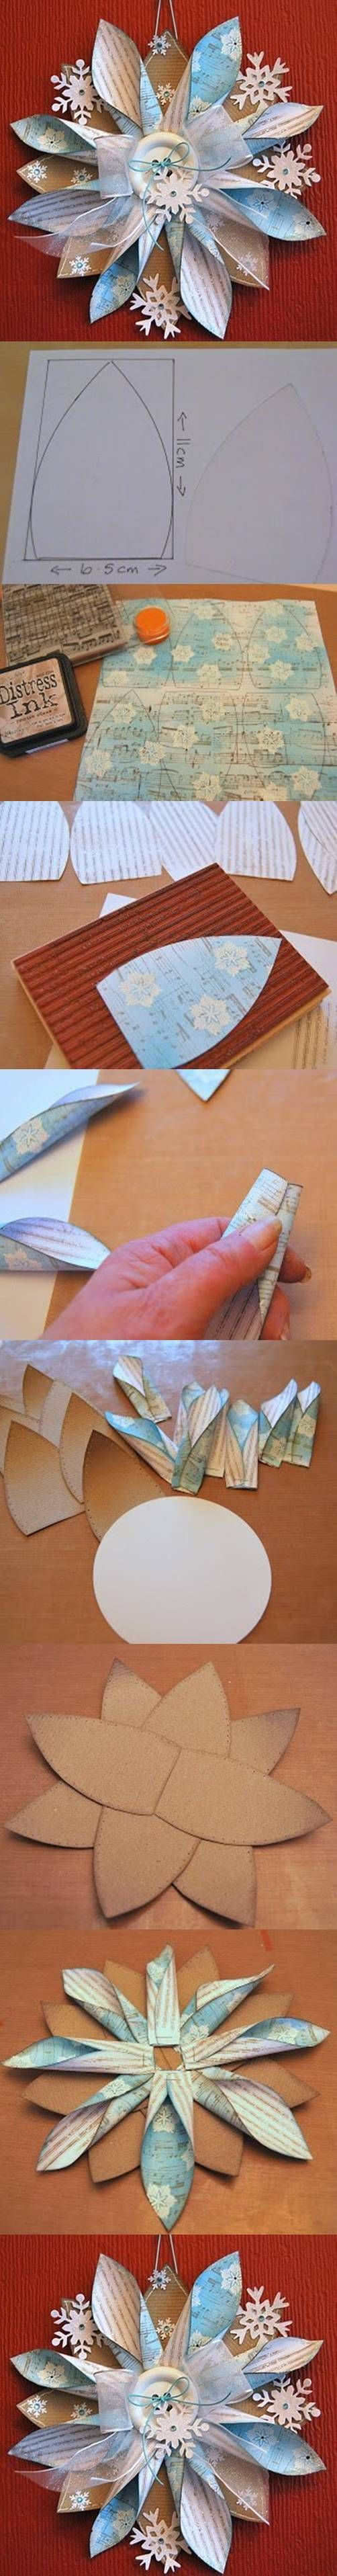 DIY Paper Flower Ornaments really like it! u can hang in on your door